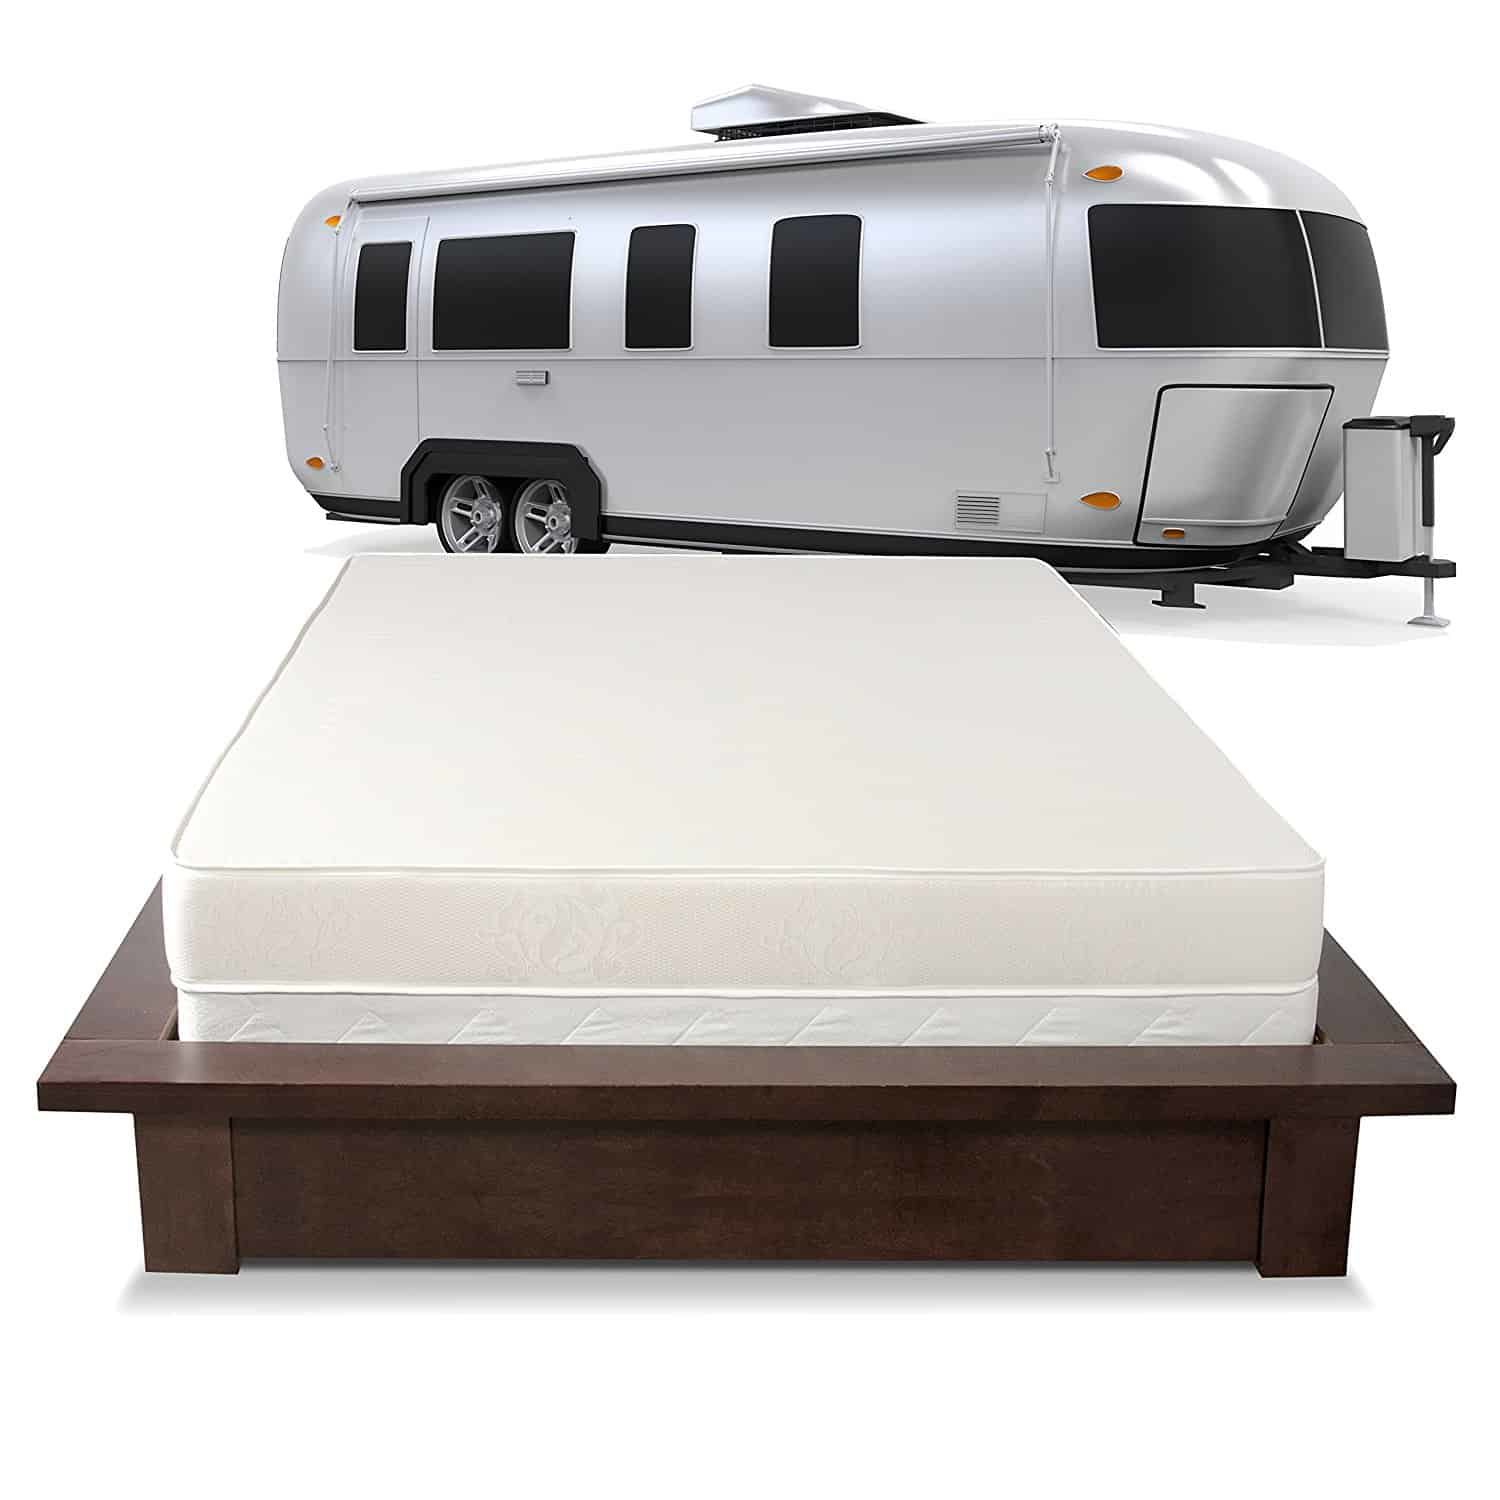 size today free mattress queen top deluxe pillowtop short pocketed dimensions product home priage overstock pillow garden shipping spring rv